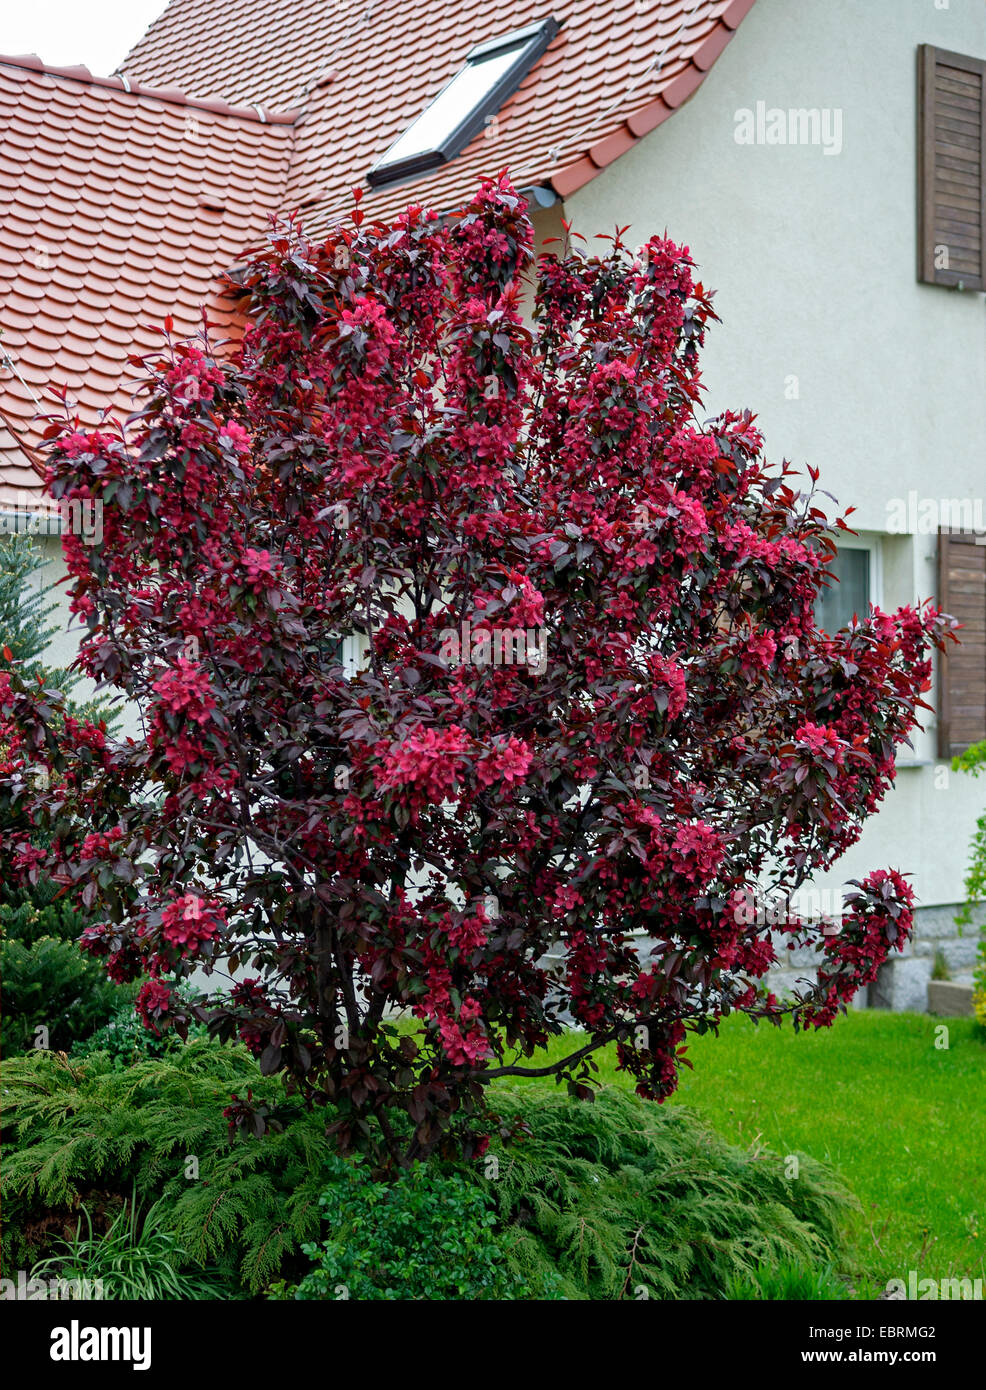 ornamental apple tree (Malus 'Royalty', Malus Royalty), cultiar Royalty, Germany - Stock Image